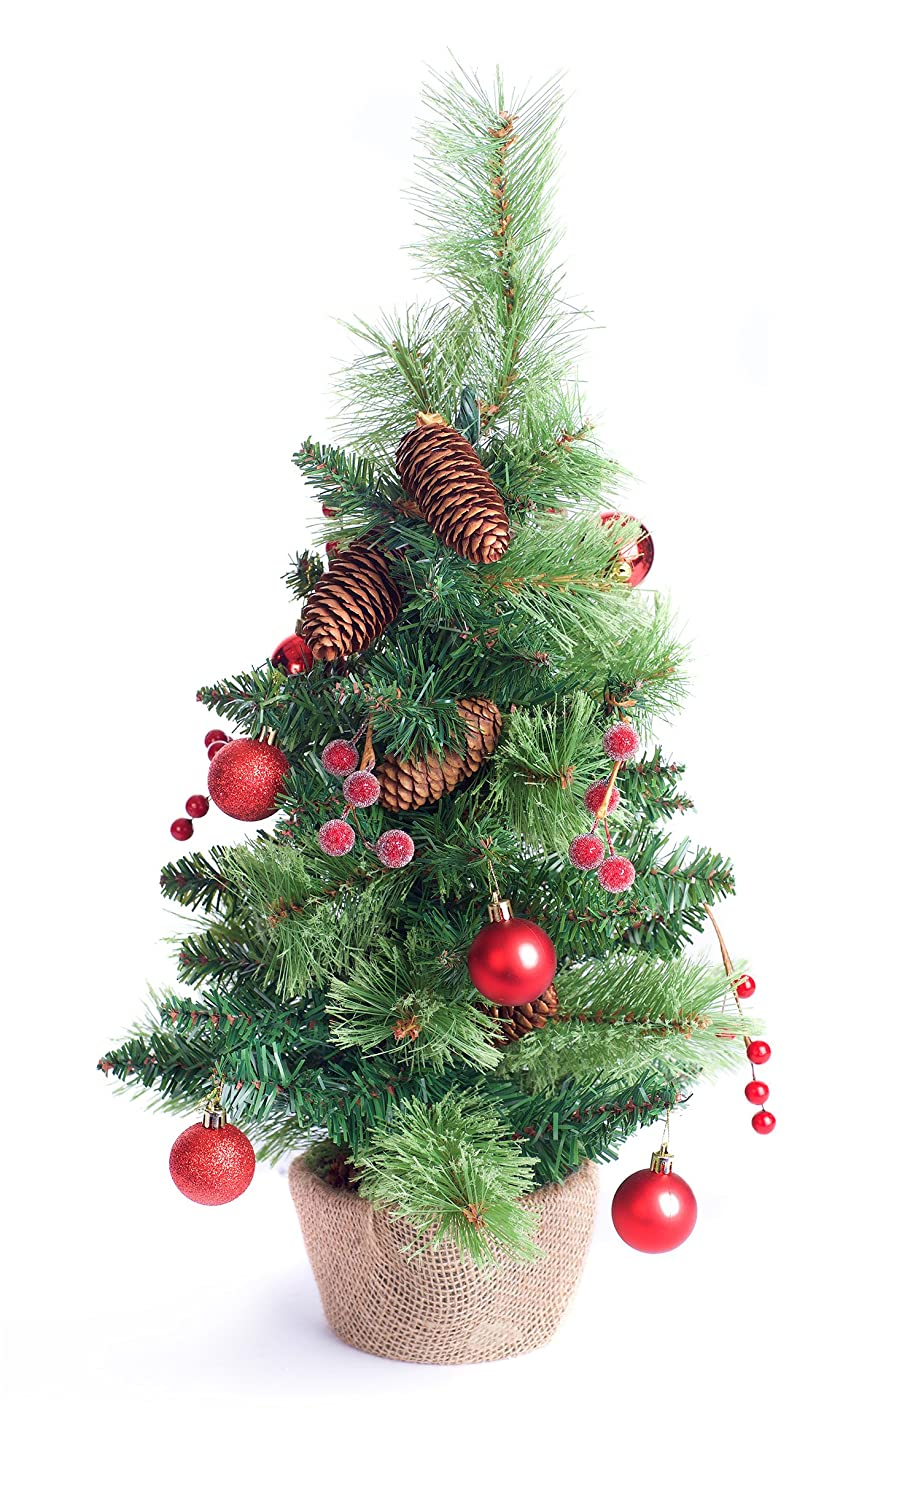 Best Artificial 2ft / 60cm Small Decorated Indoor Christmas Tree with 20 Warm White LED Battery Lights (Gold)